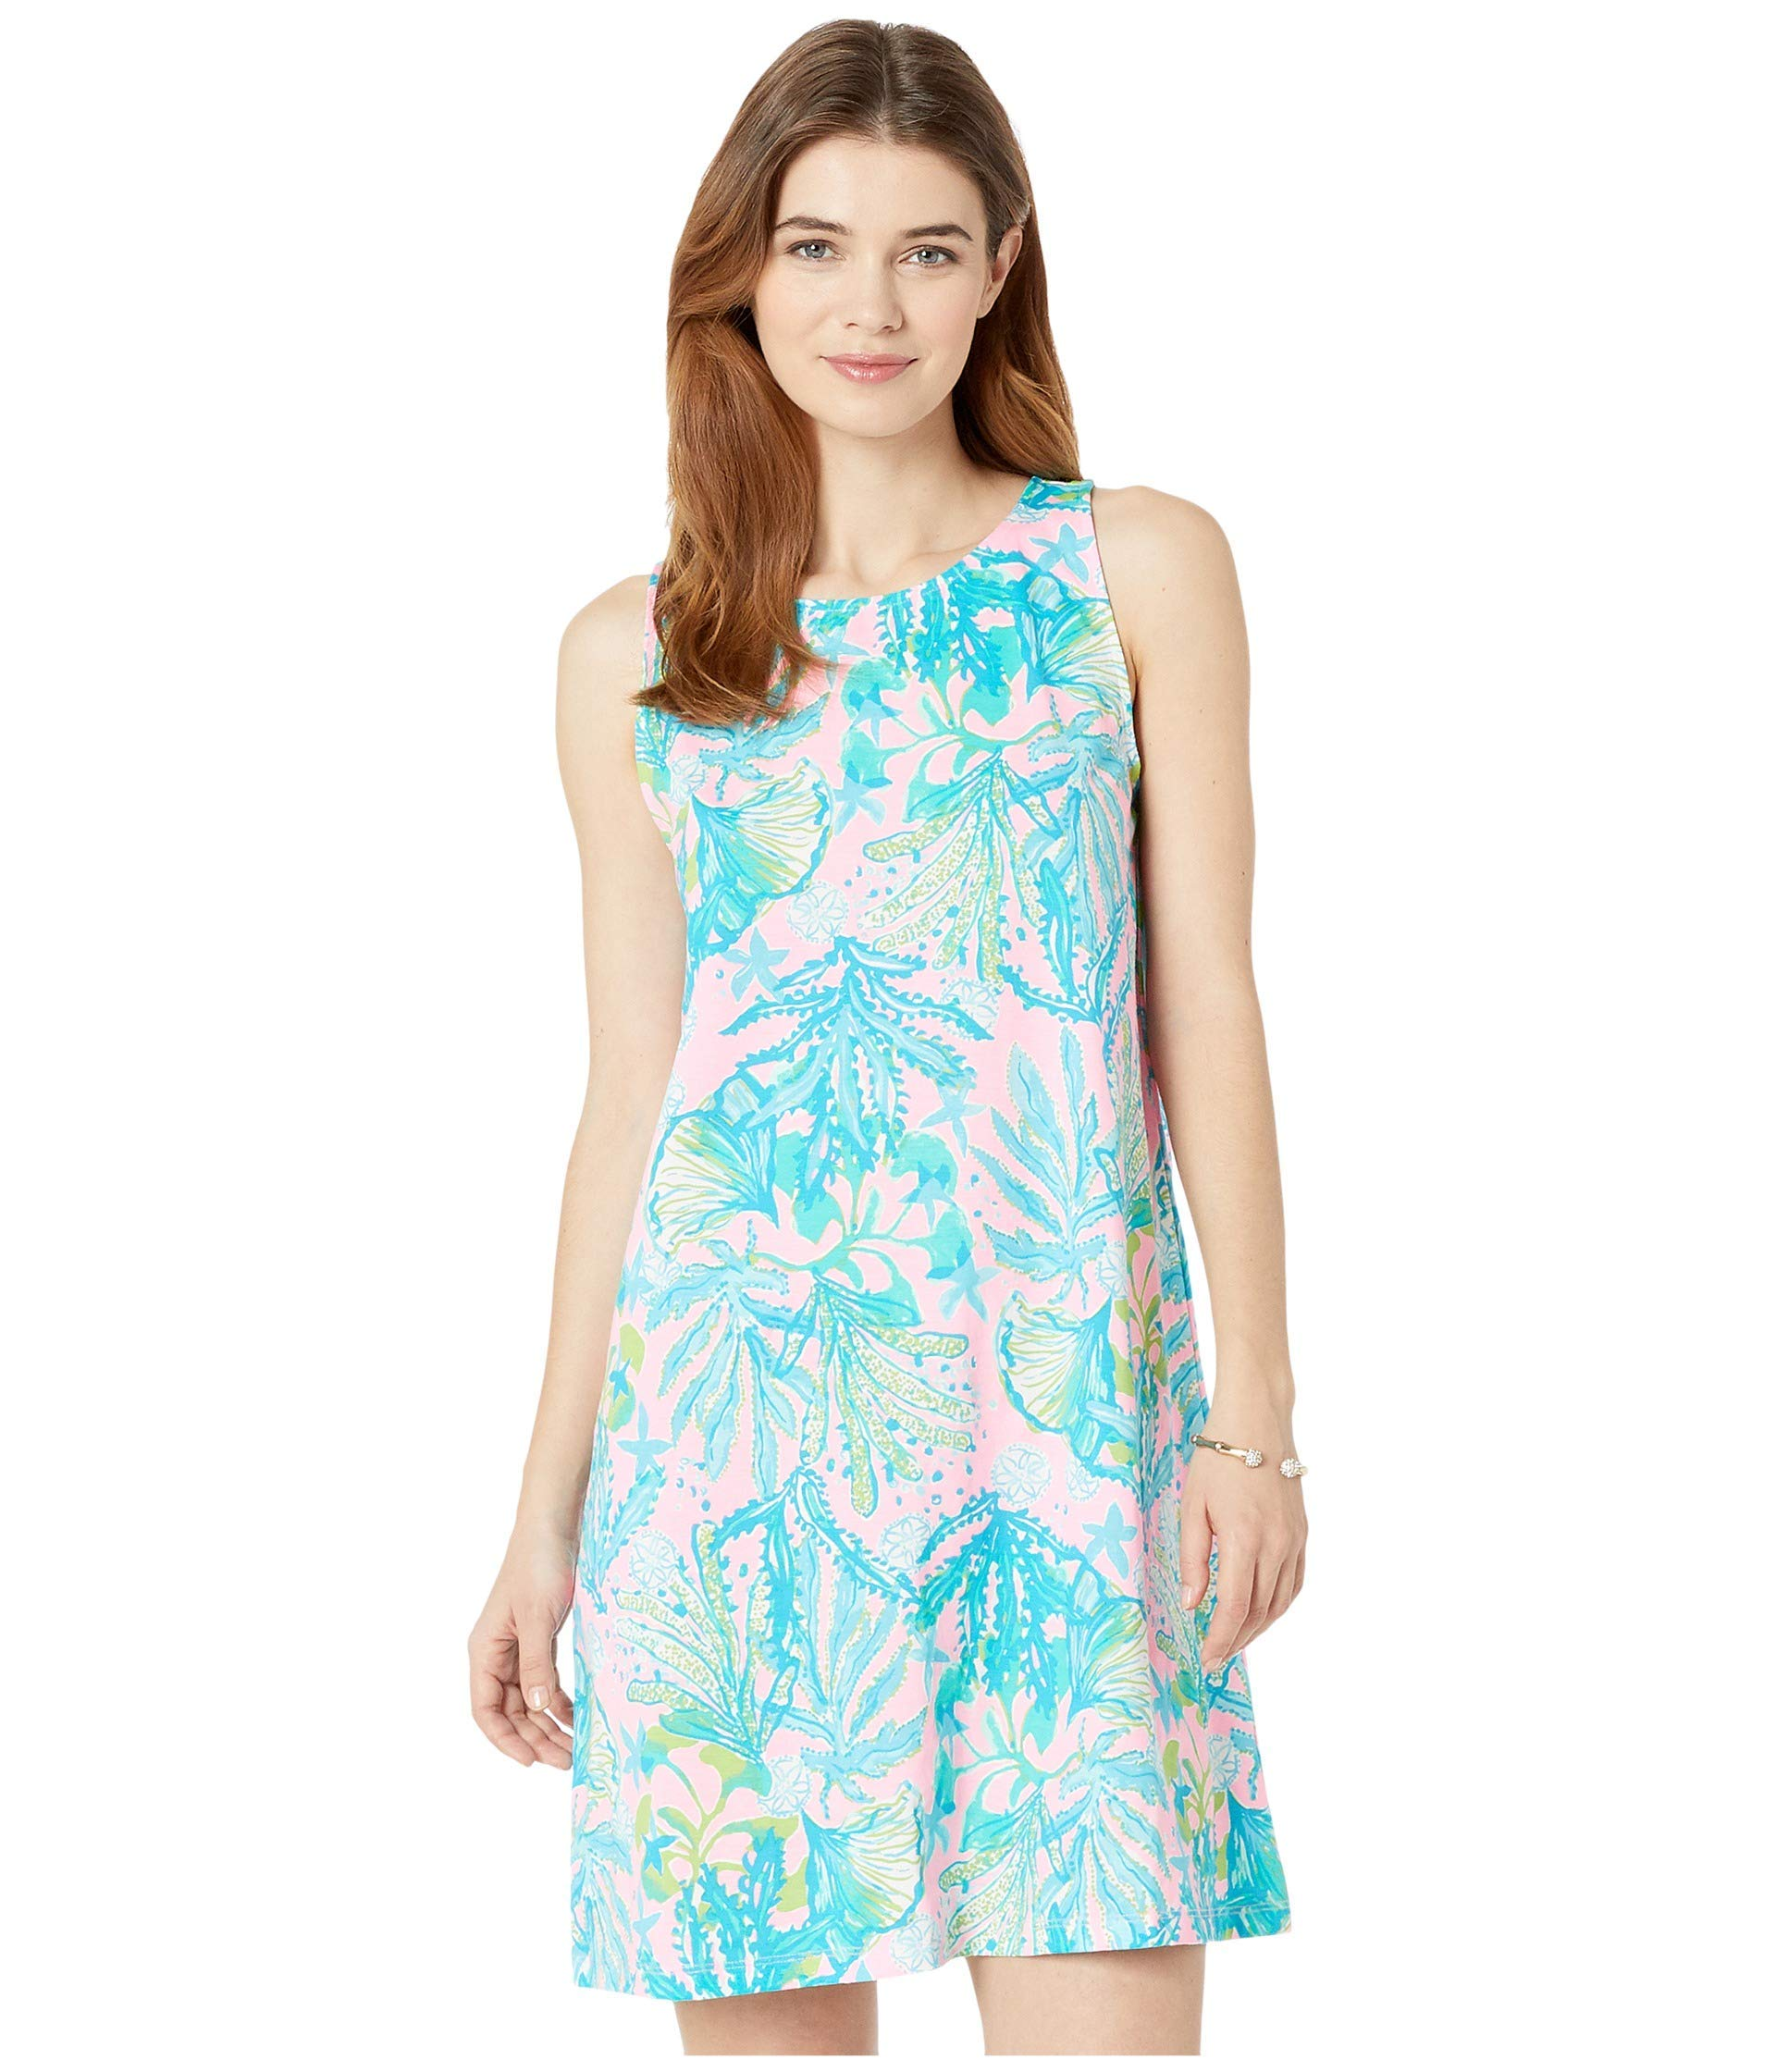 Available at Amazon: Lilly Pulitzer Women's Kristen Dress